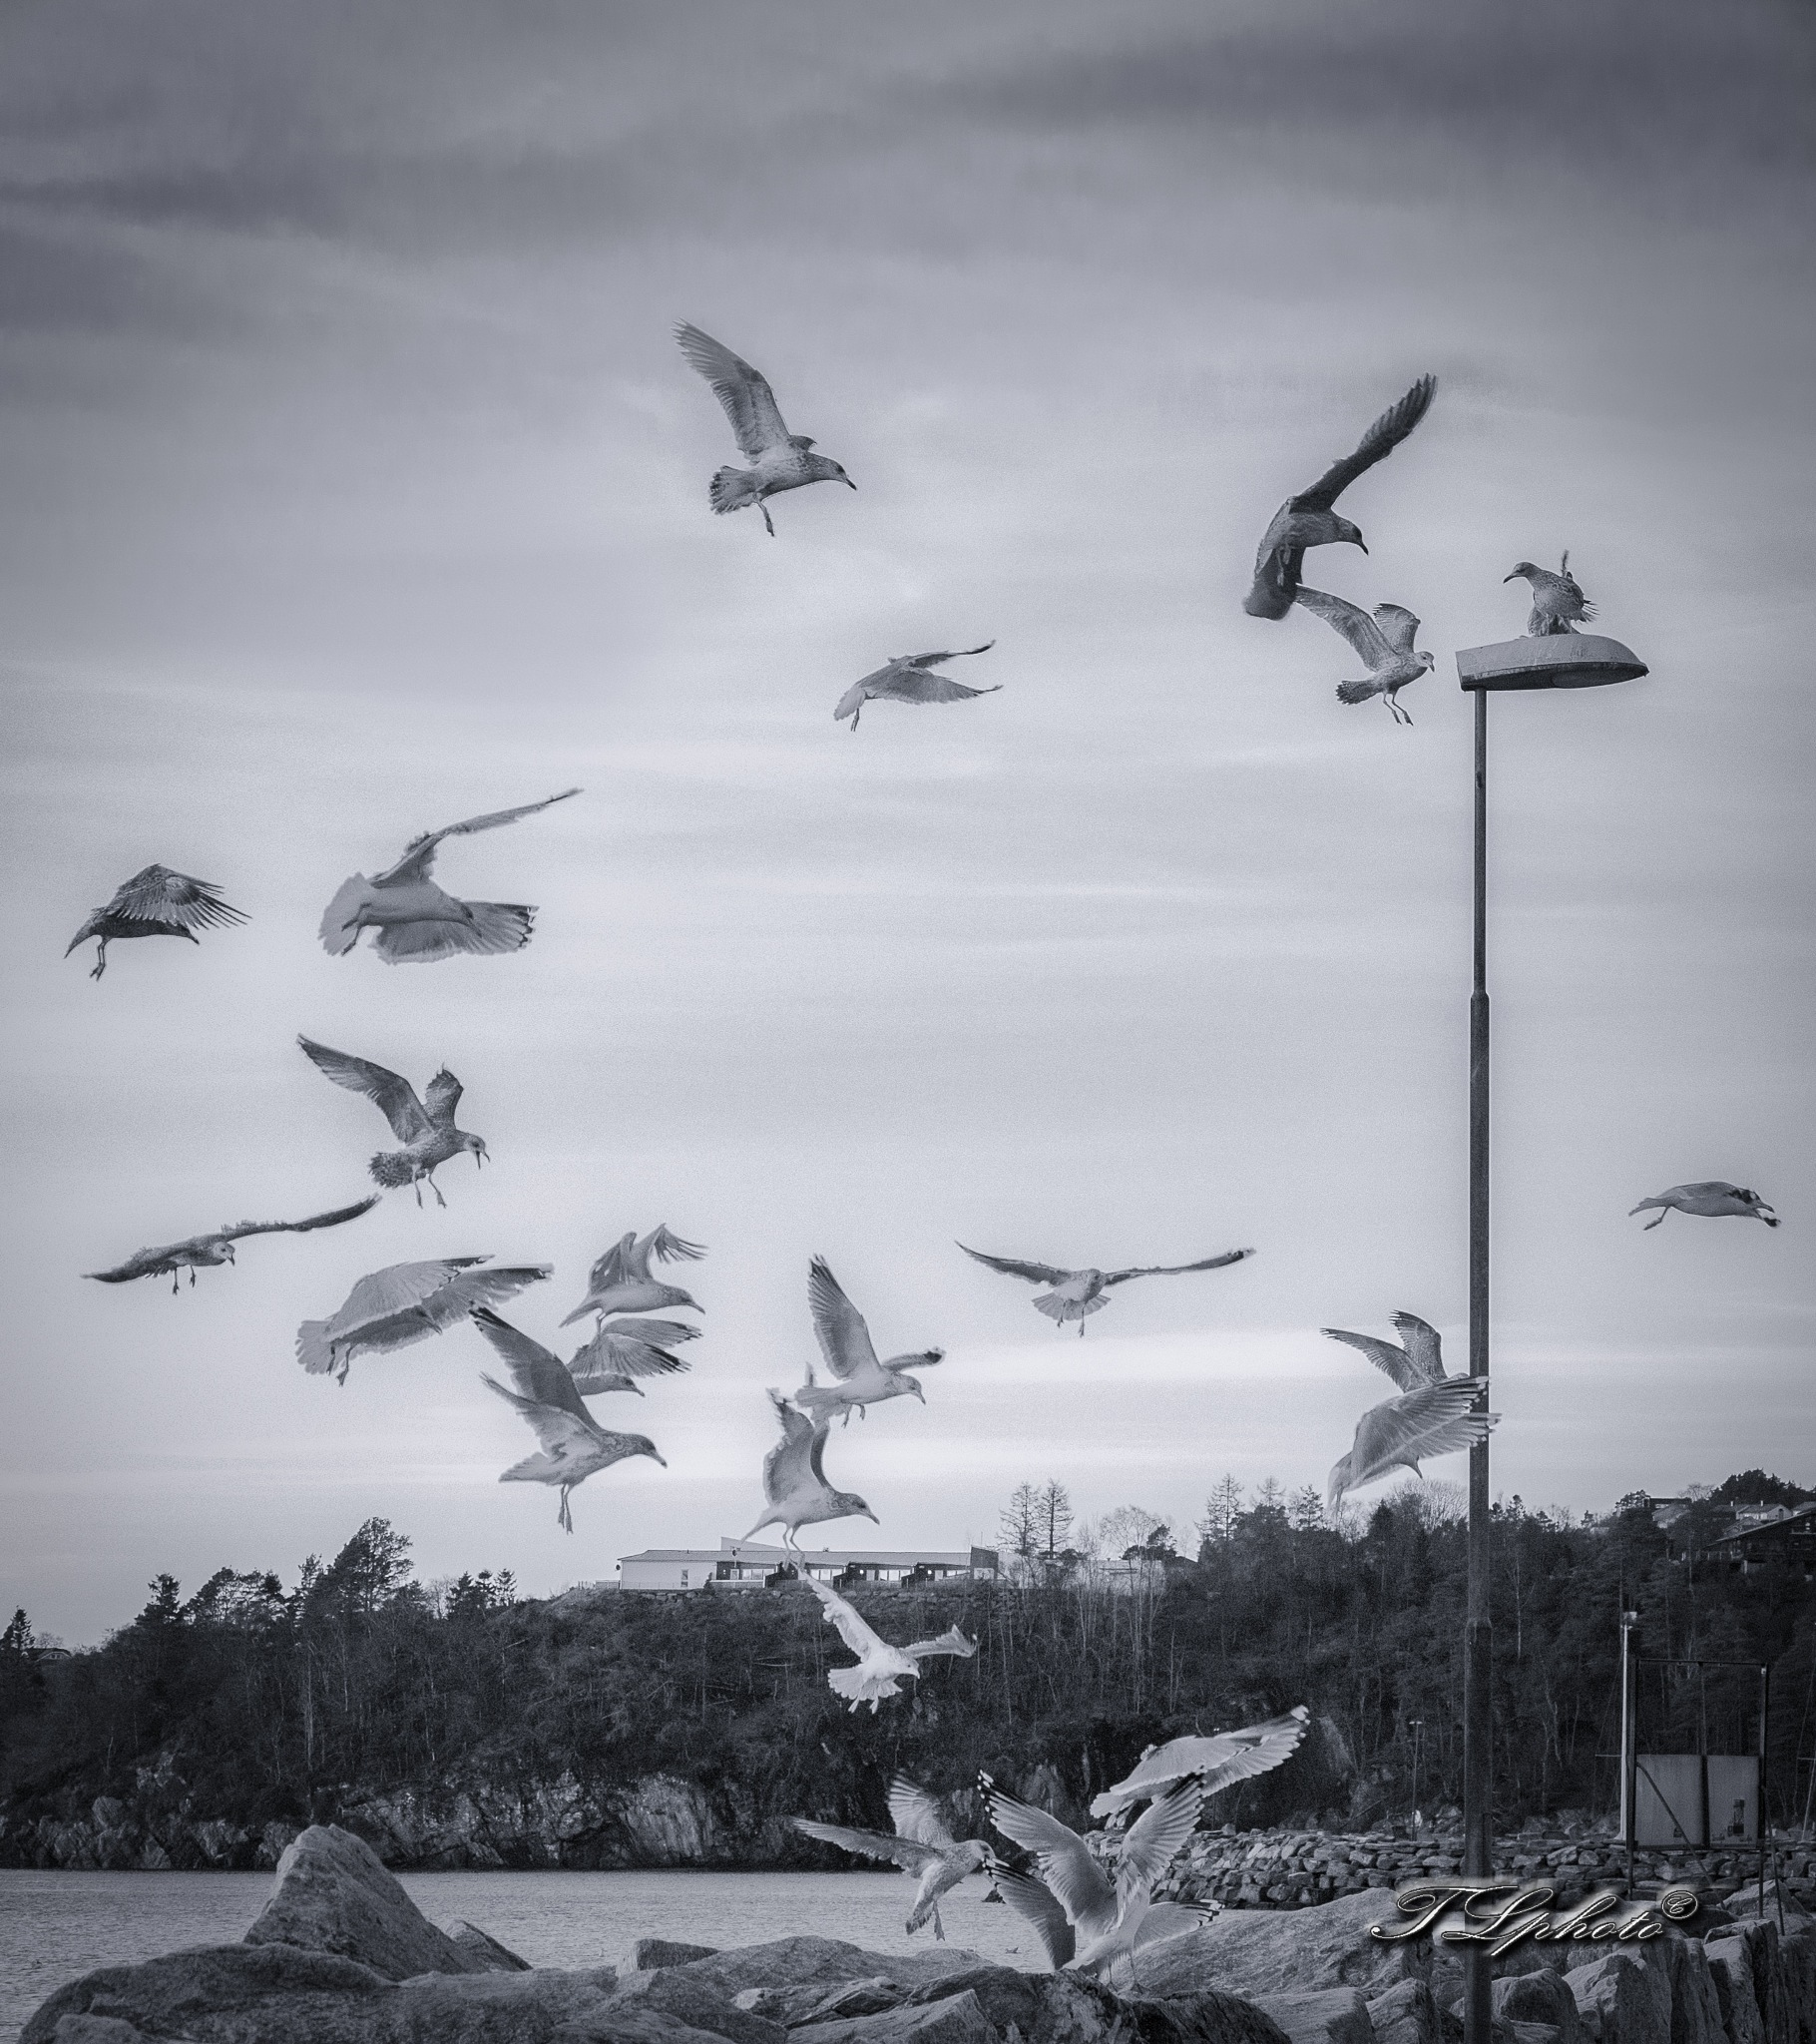 Seagulls by Thore's photo